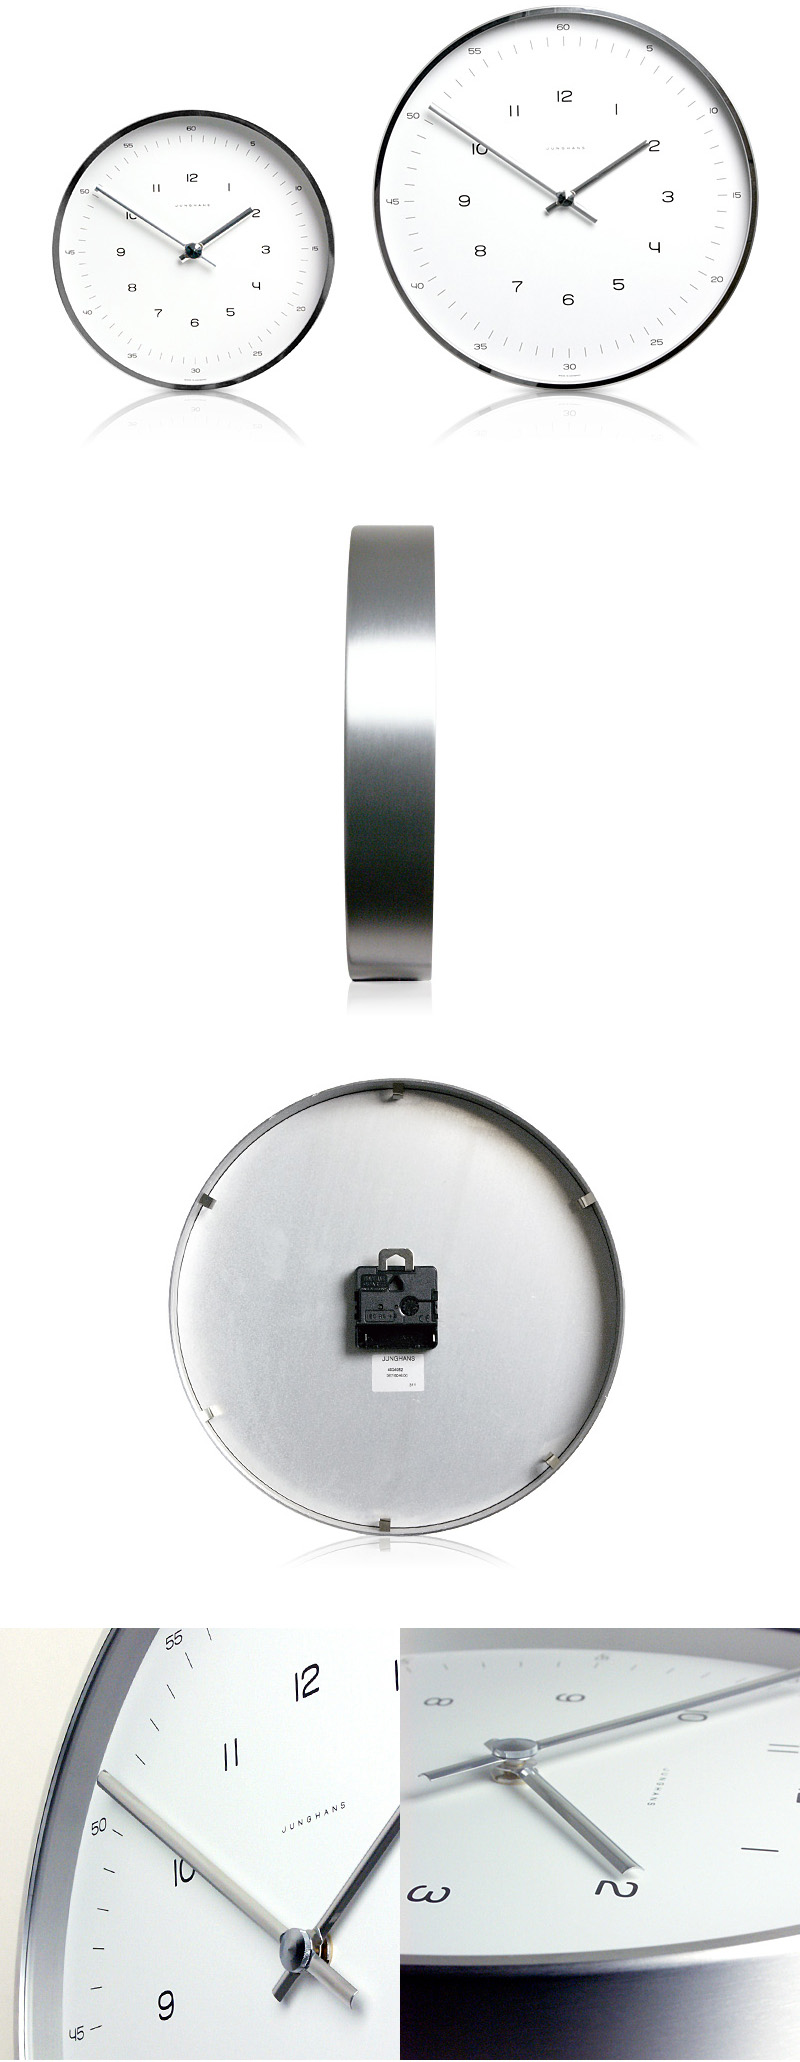 Max bill modern office wall clock with numbers max bill clocks max bill clocks click to view additional images amipublicfo Images